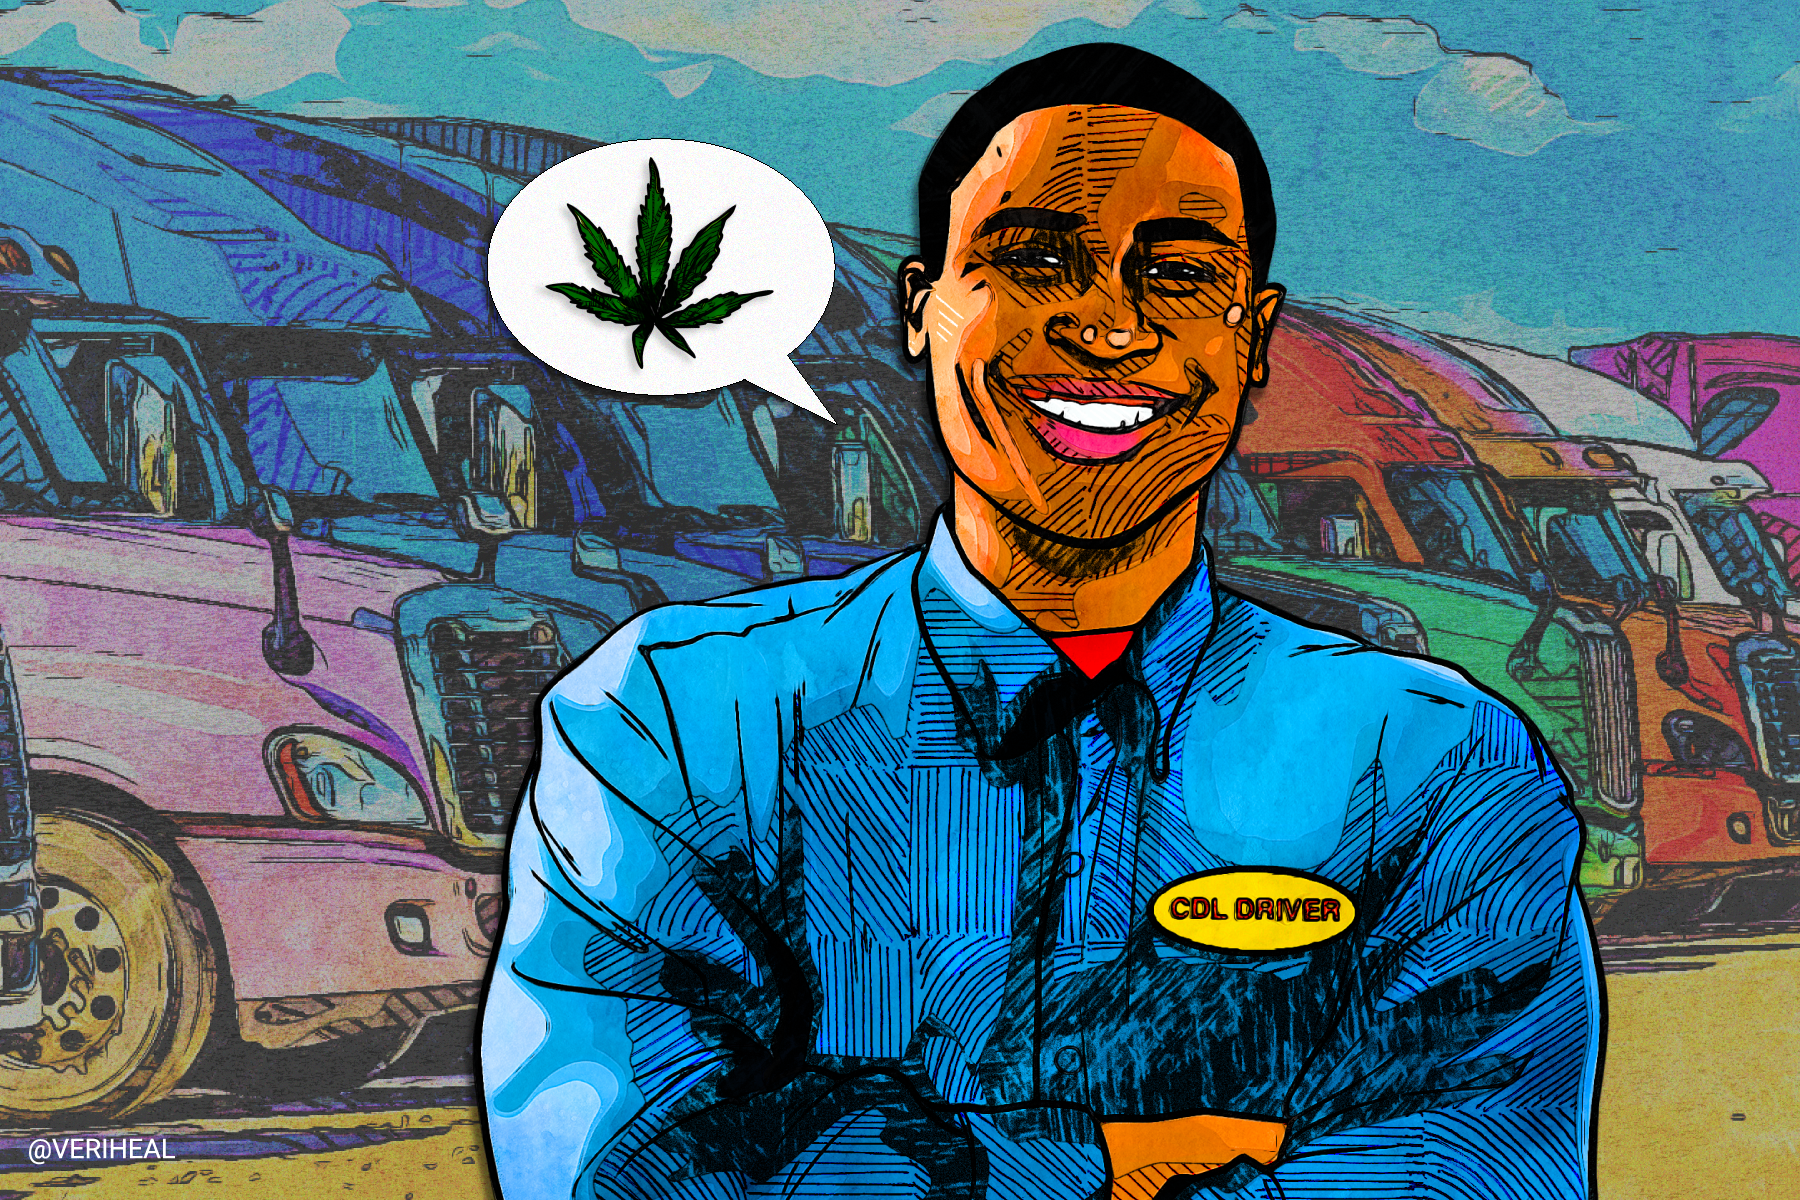 Commercial Drivers Are Embracing Cannabis Despite Risking Termination